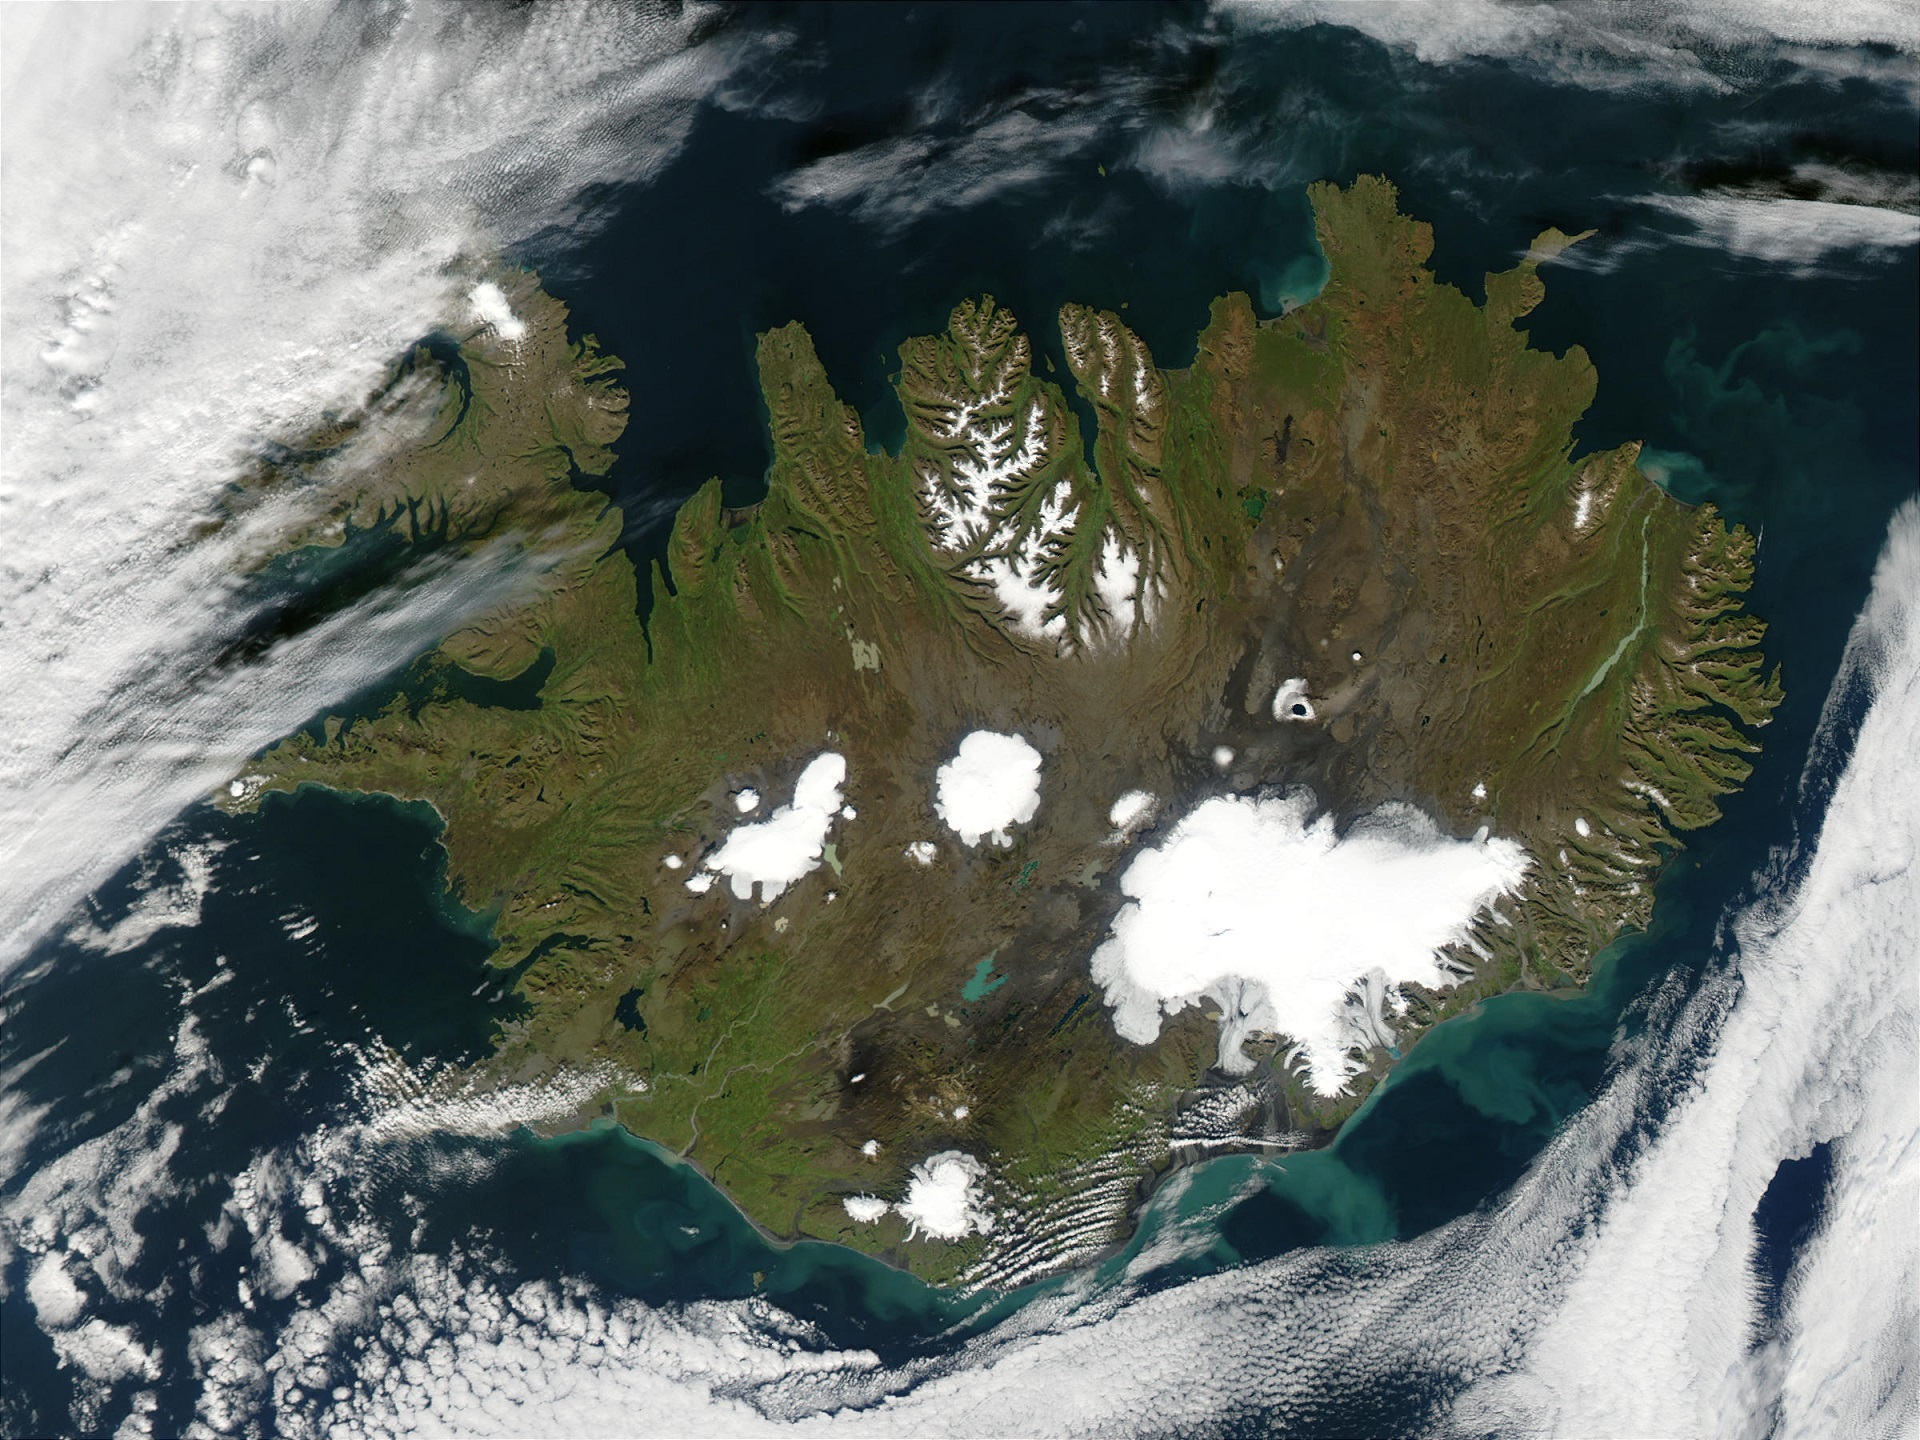 MODIS satelite image of Iceland showing the largest ice caps. Source: https://terra.nasa.gov/about/terra-instruments/modis.